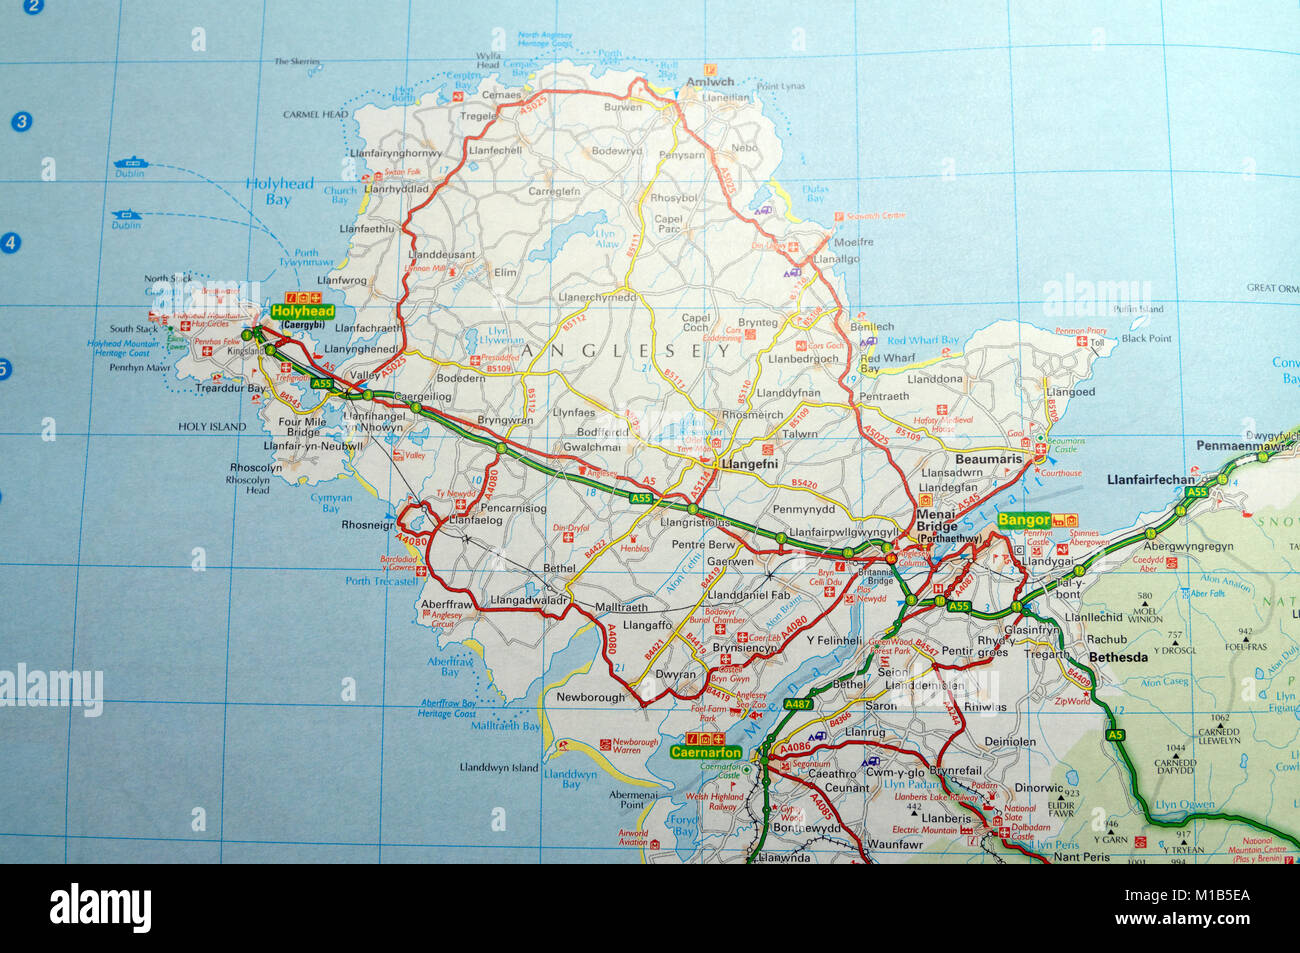 Map Of Anglesey Road Map of Anglesey or Ynys Mon, Wales Stock Photo: 172964130   Alamy Map Of Anglesey